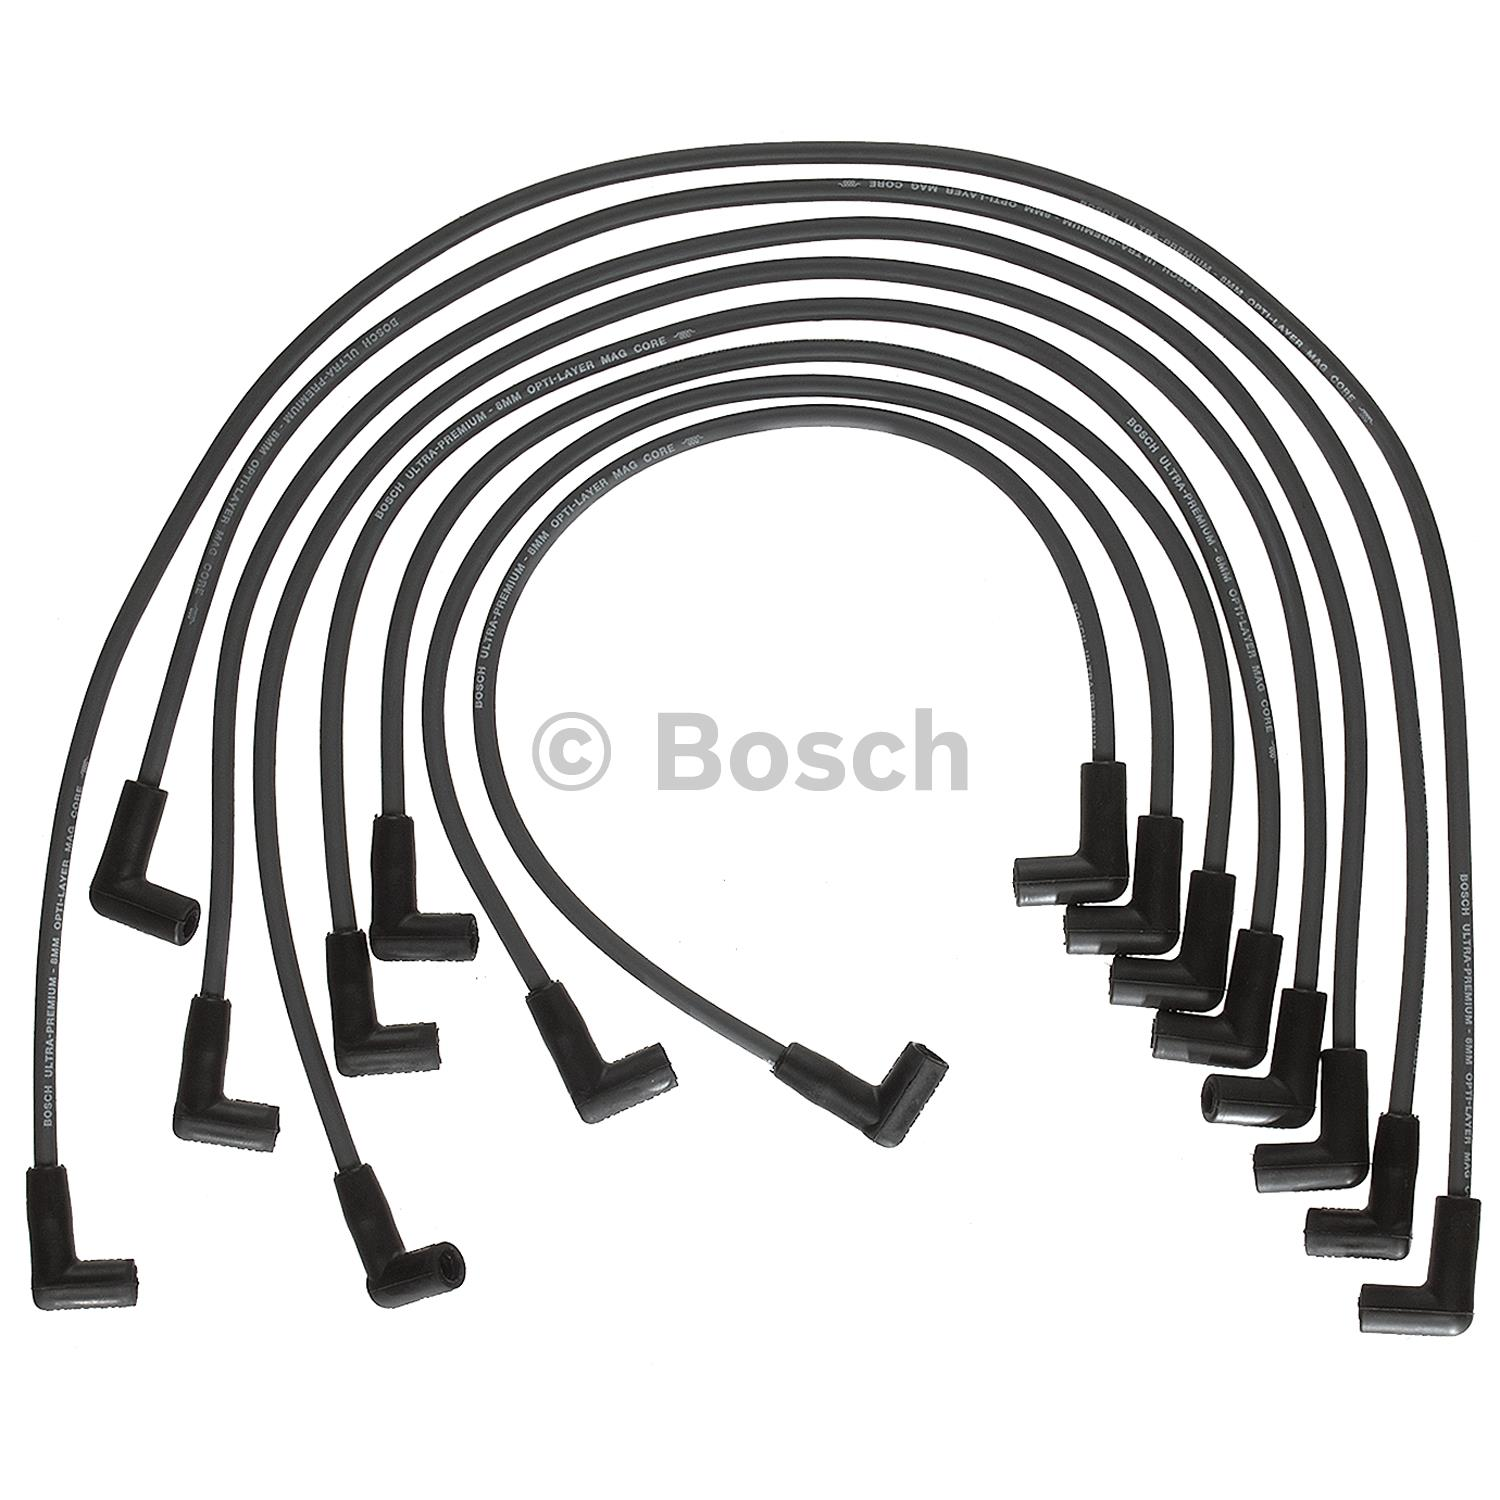 Bosch Ignition System